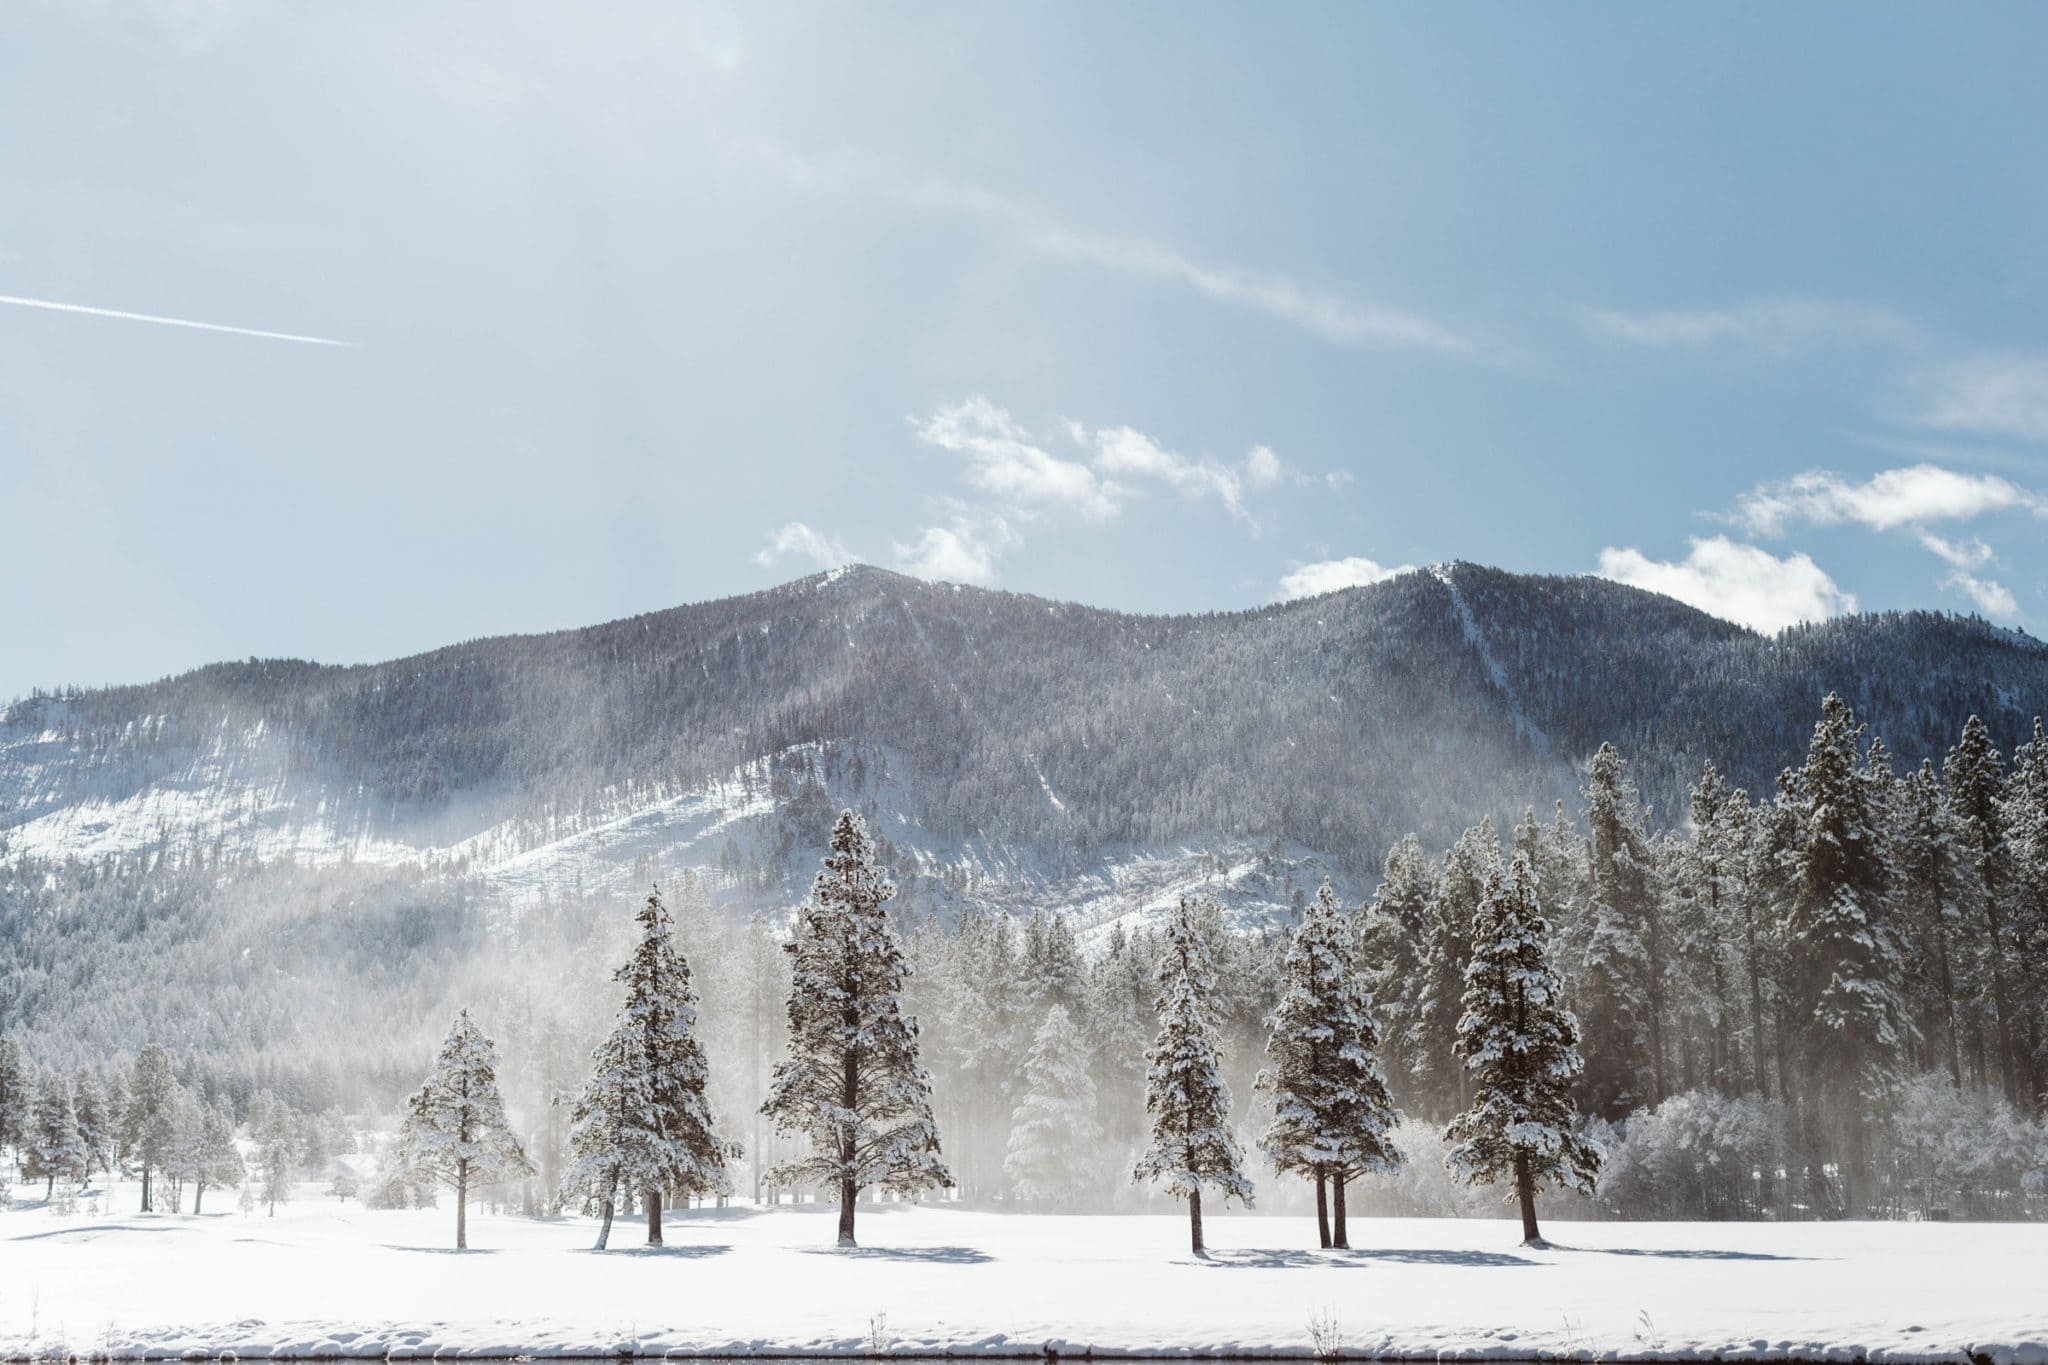 Snow covered trees and mountains in Lake Tahoe.